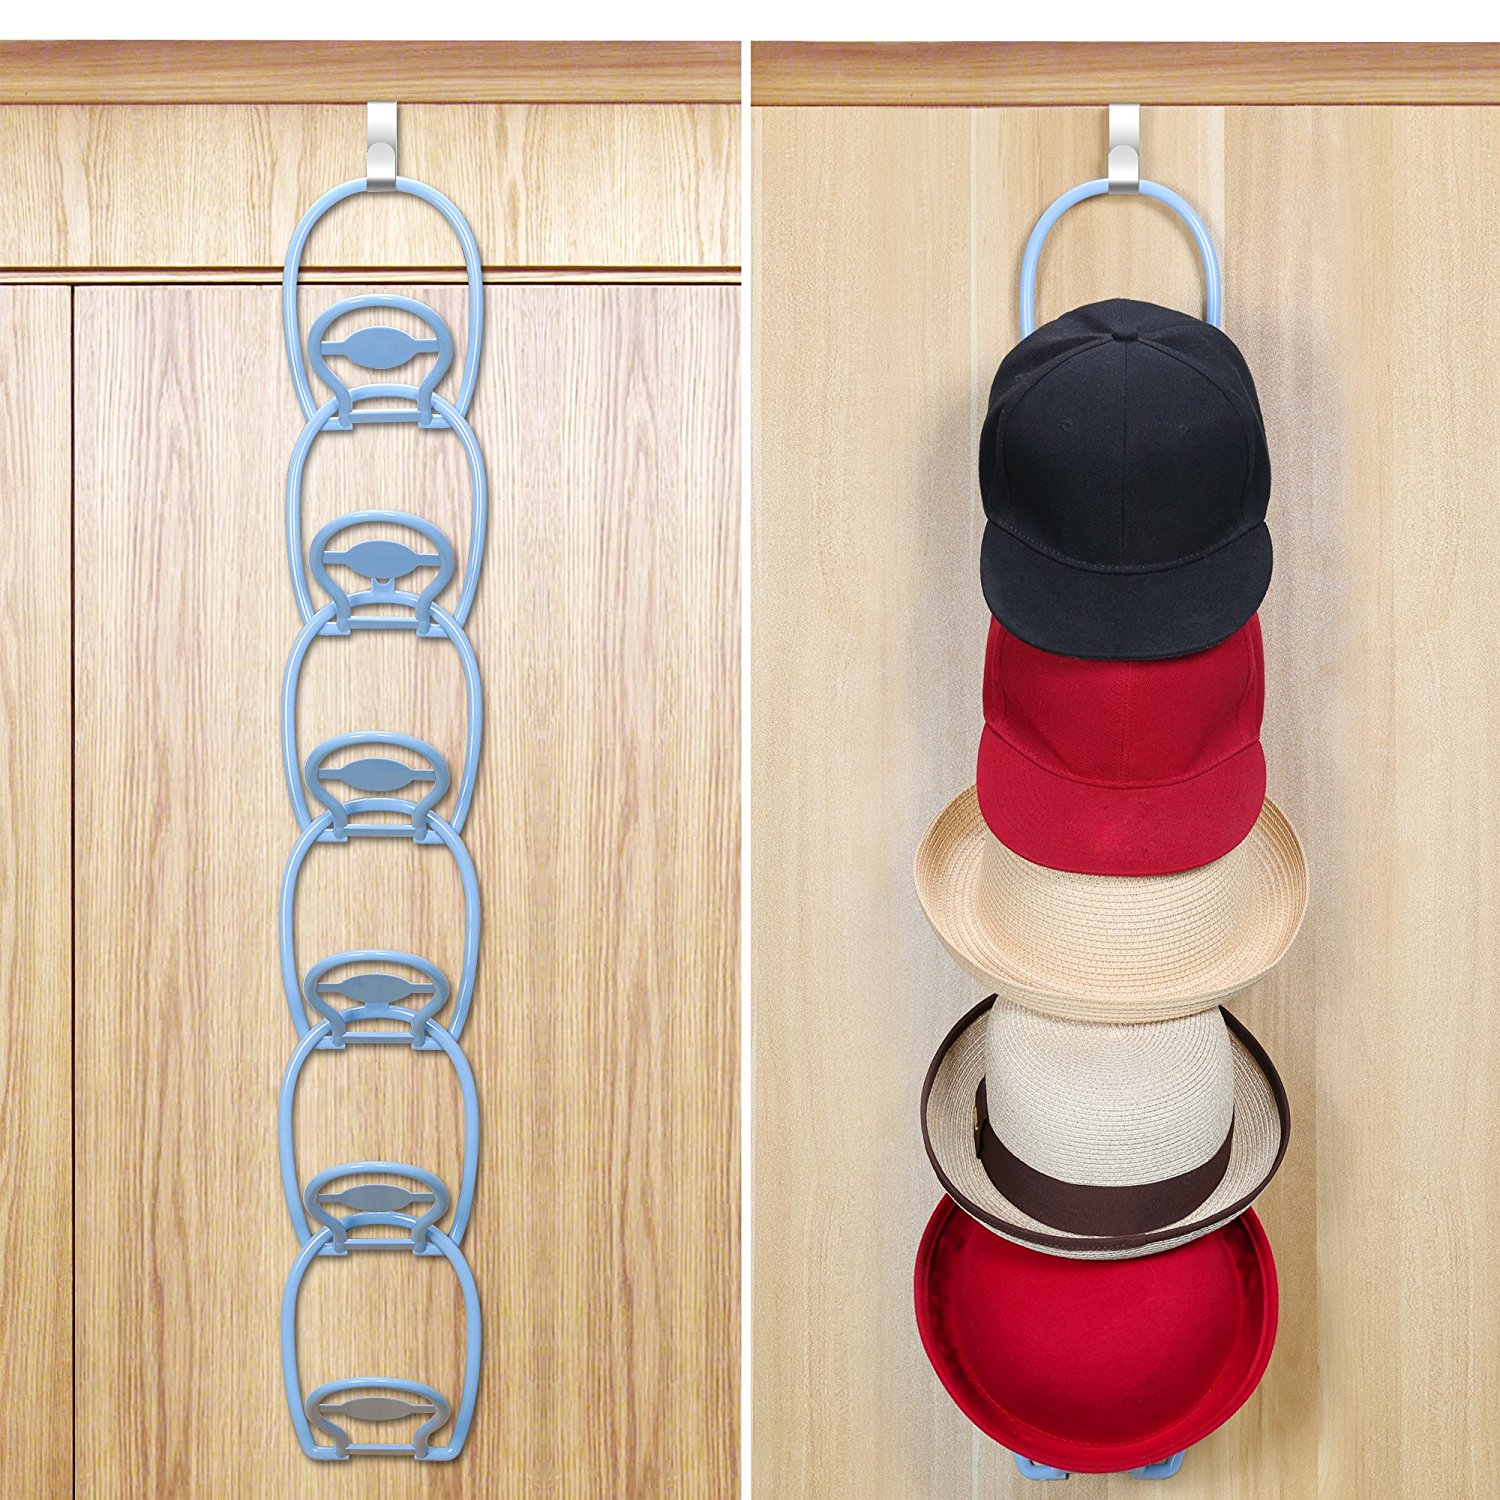 Hat Holders For Walls Faayfian Door And Wall Mounted Baseball Cap Hat Racks Holder